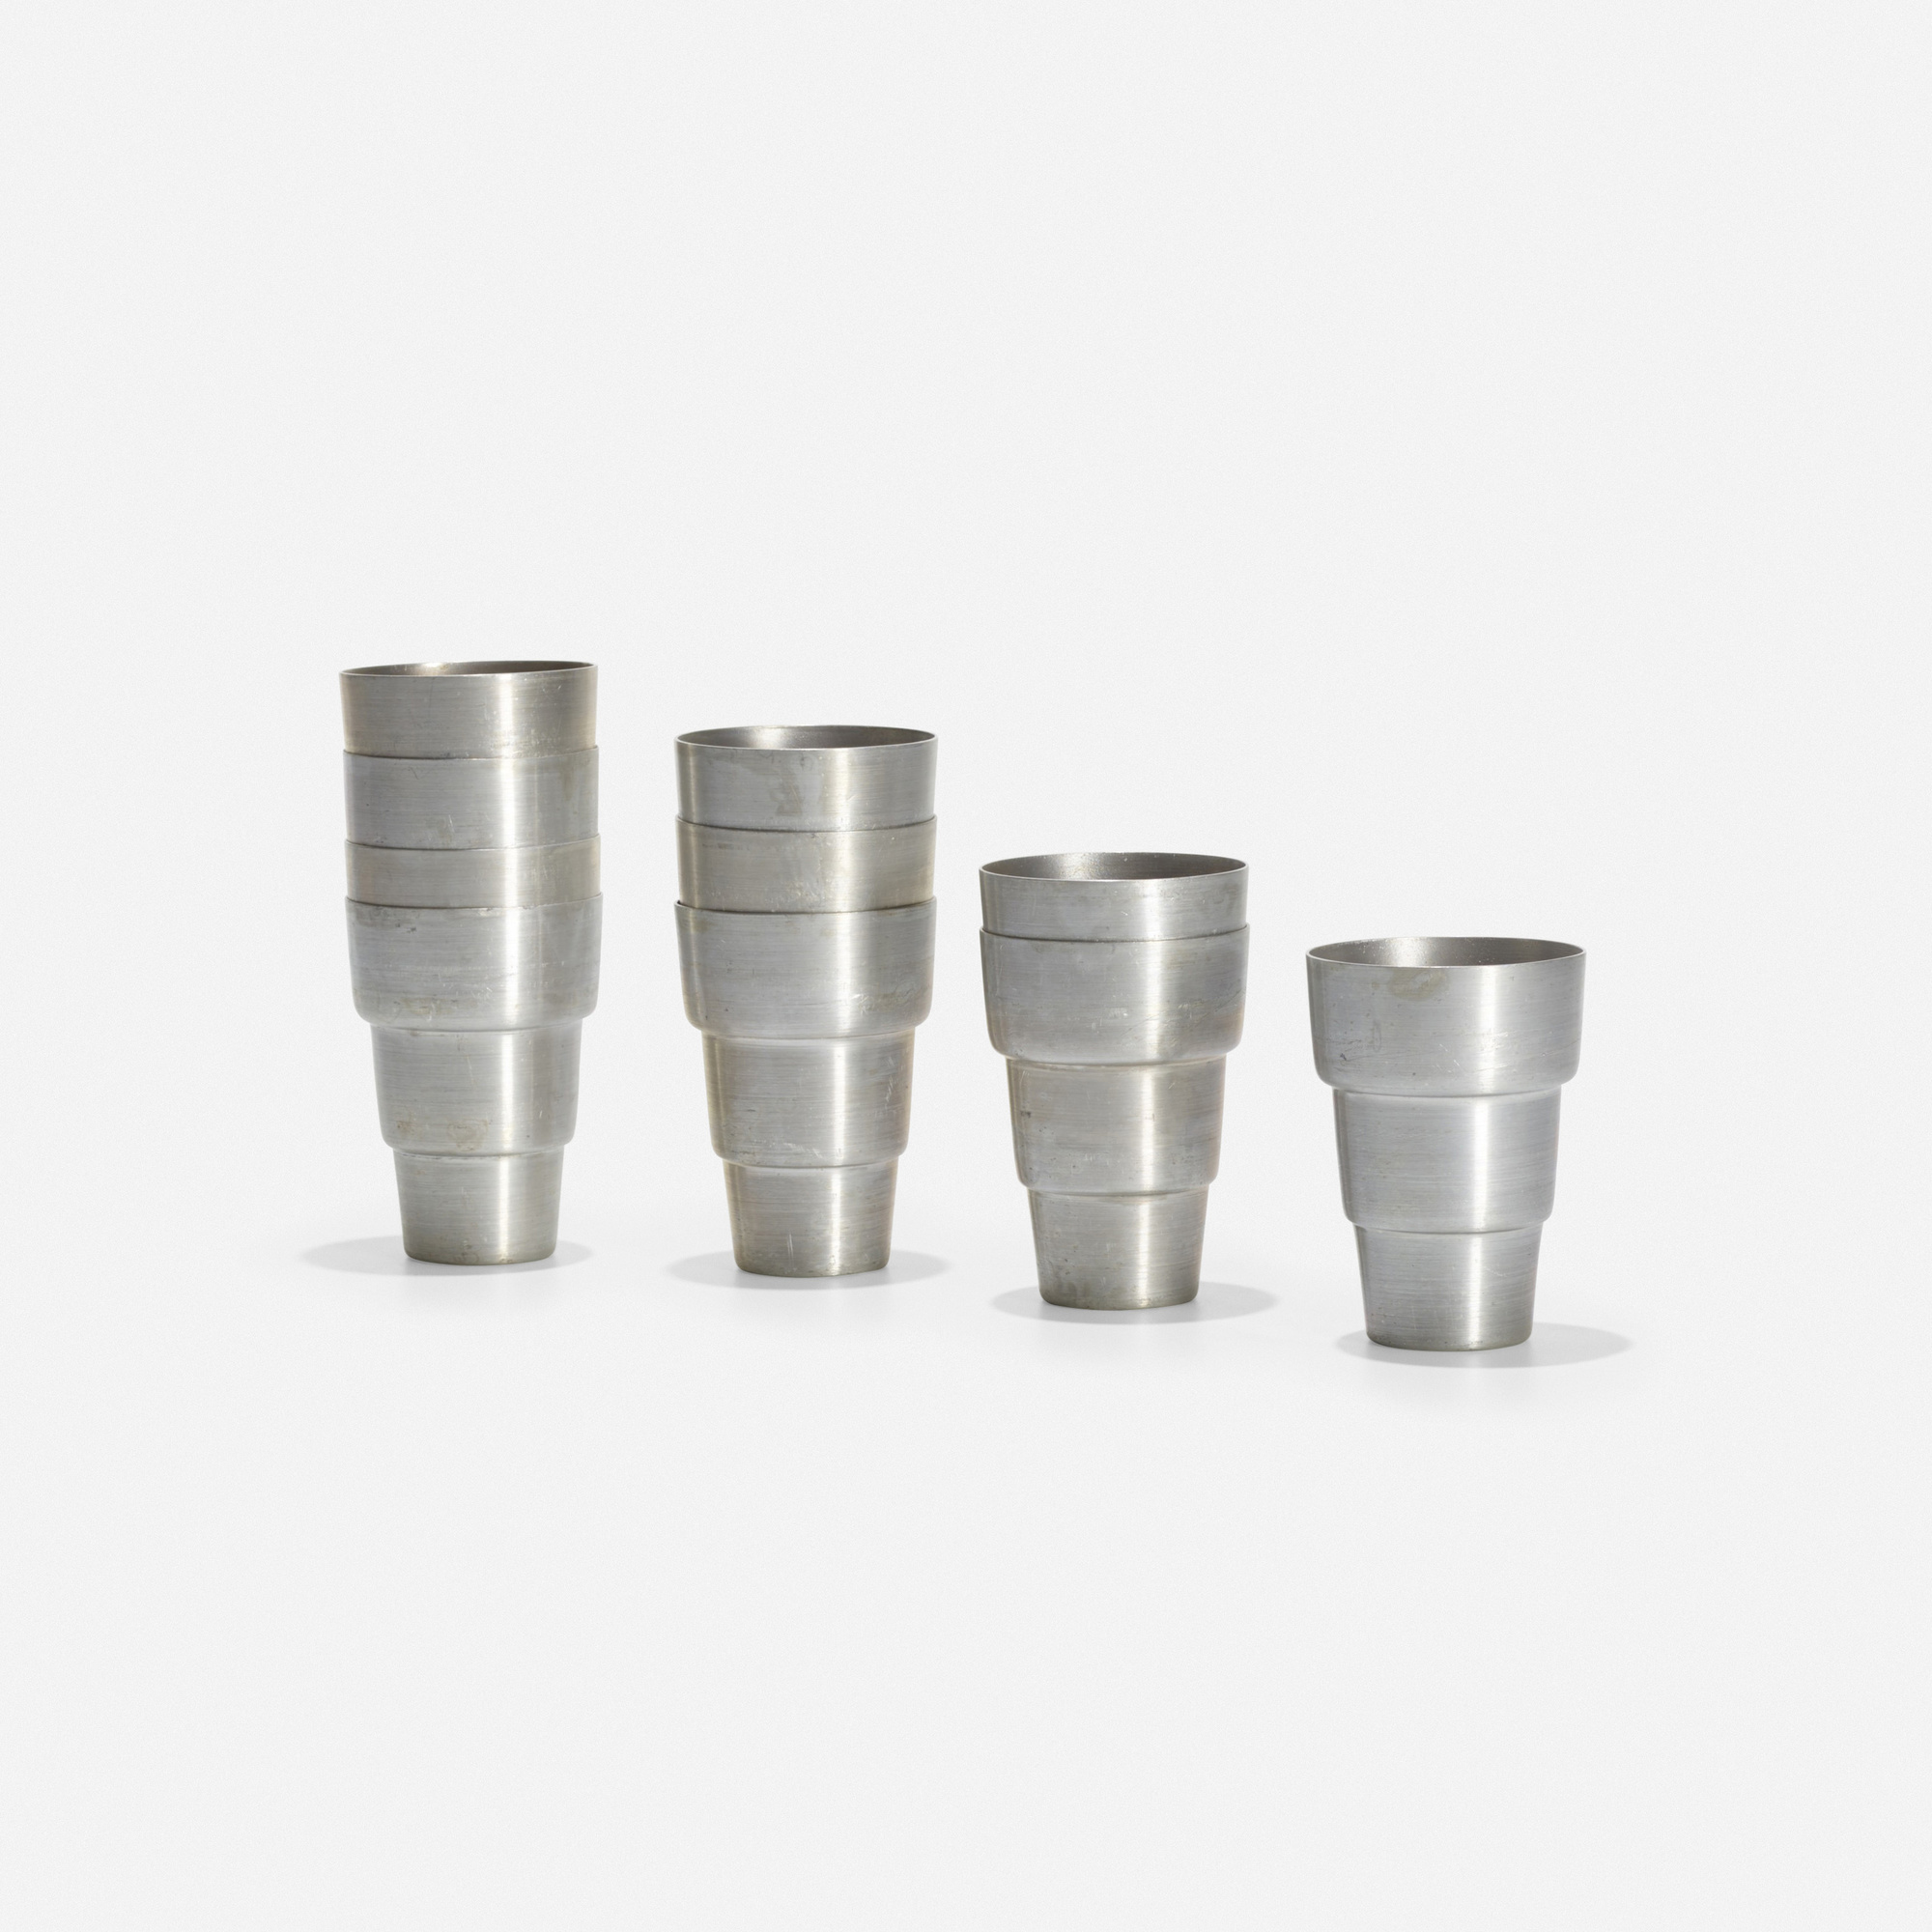 178: Russel Wright / cups, set of ten (2 of 2)